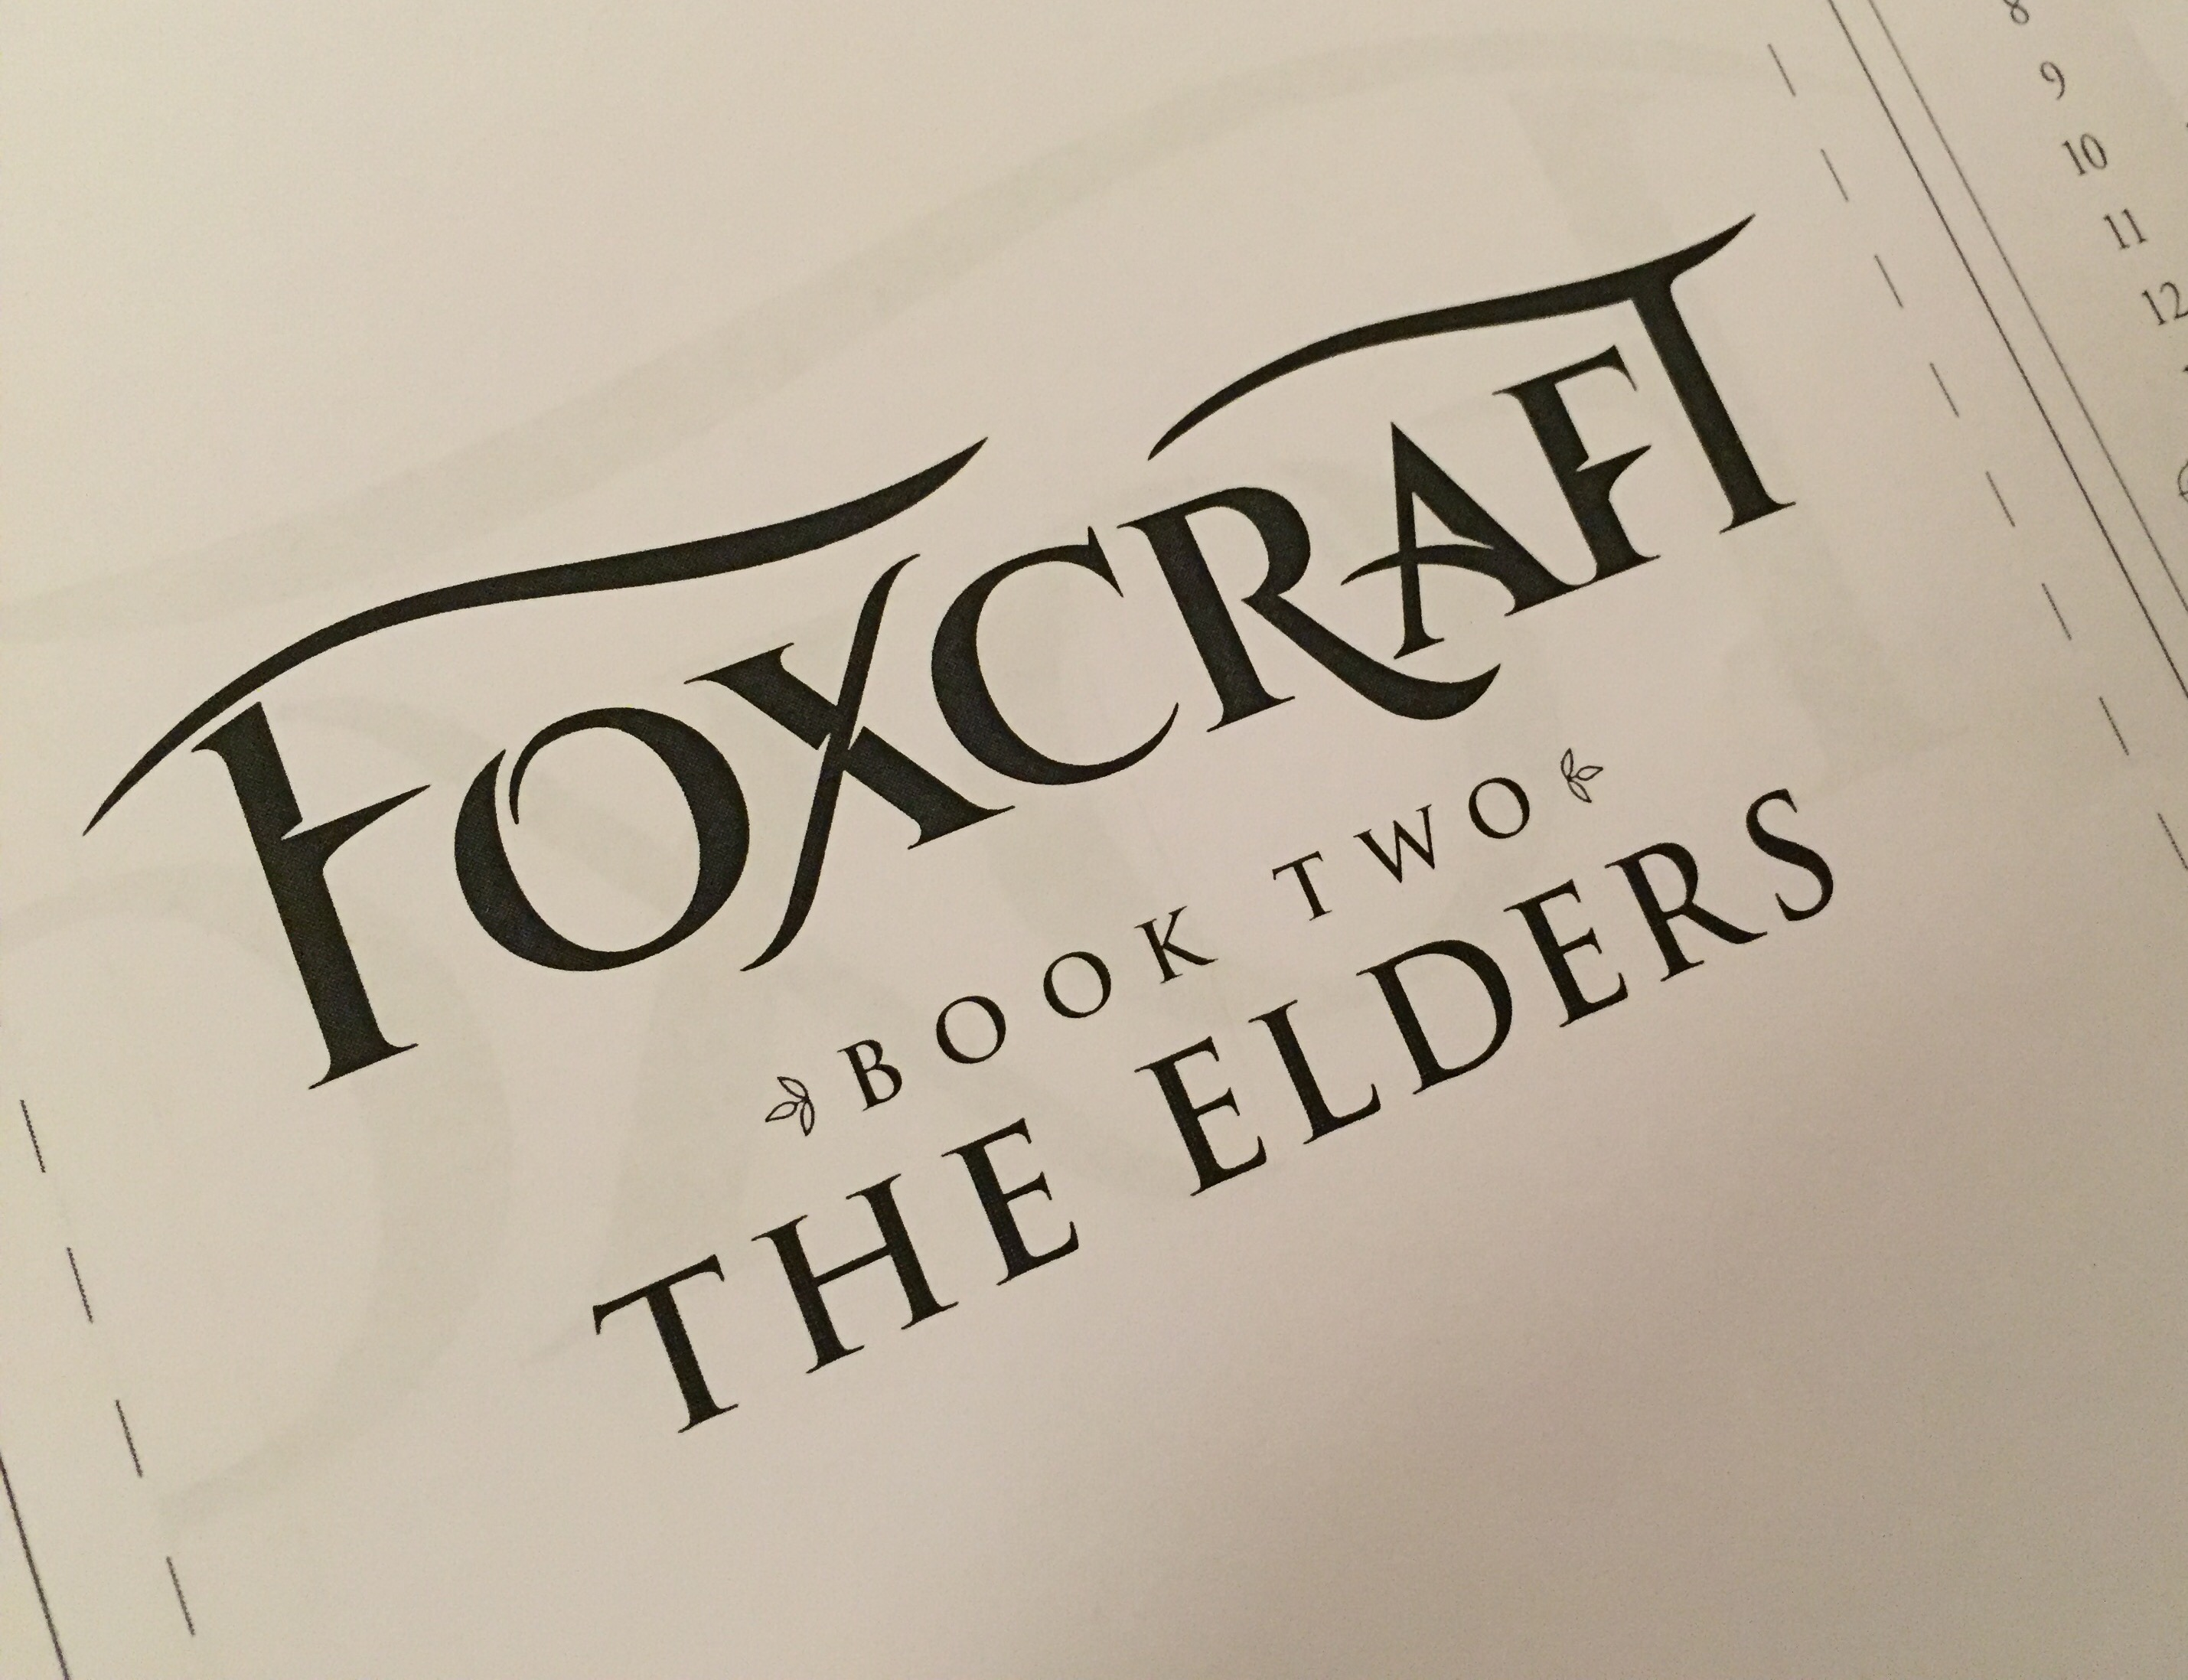 Foxcraft The Elders